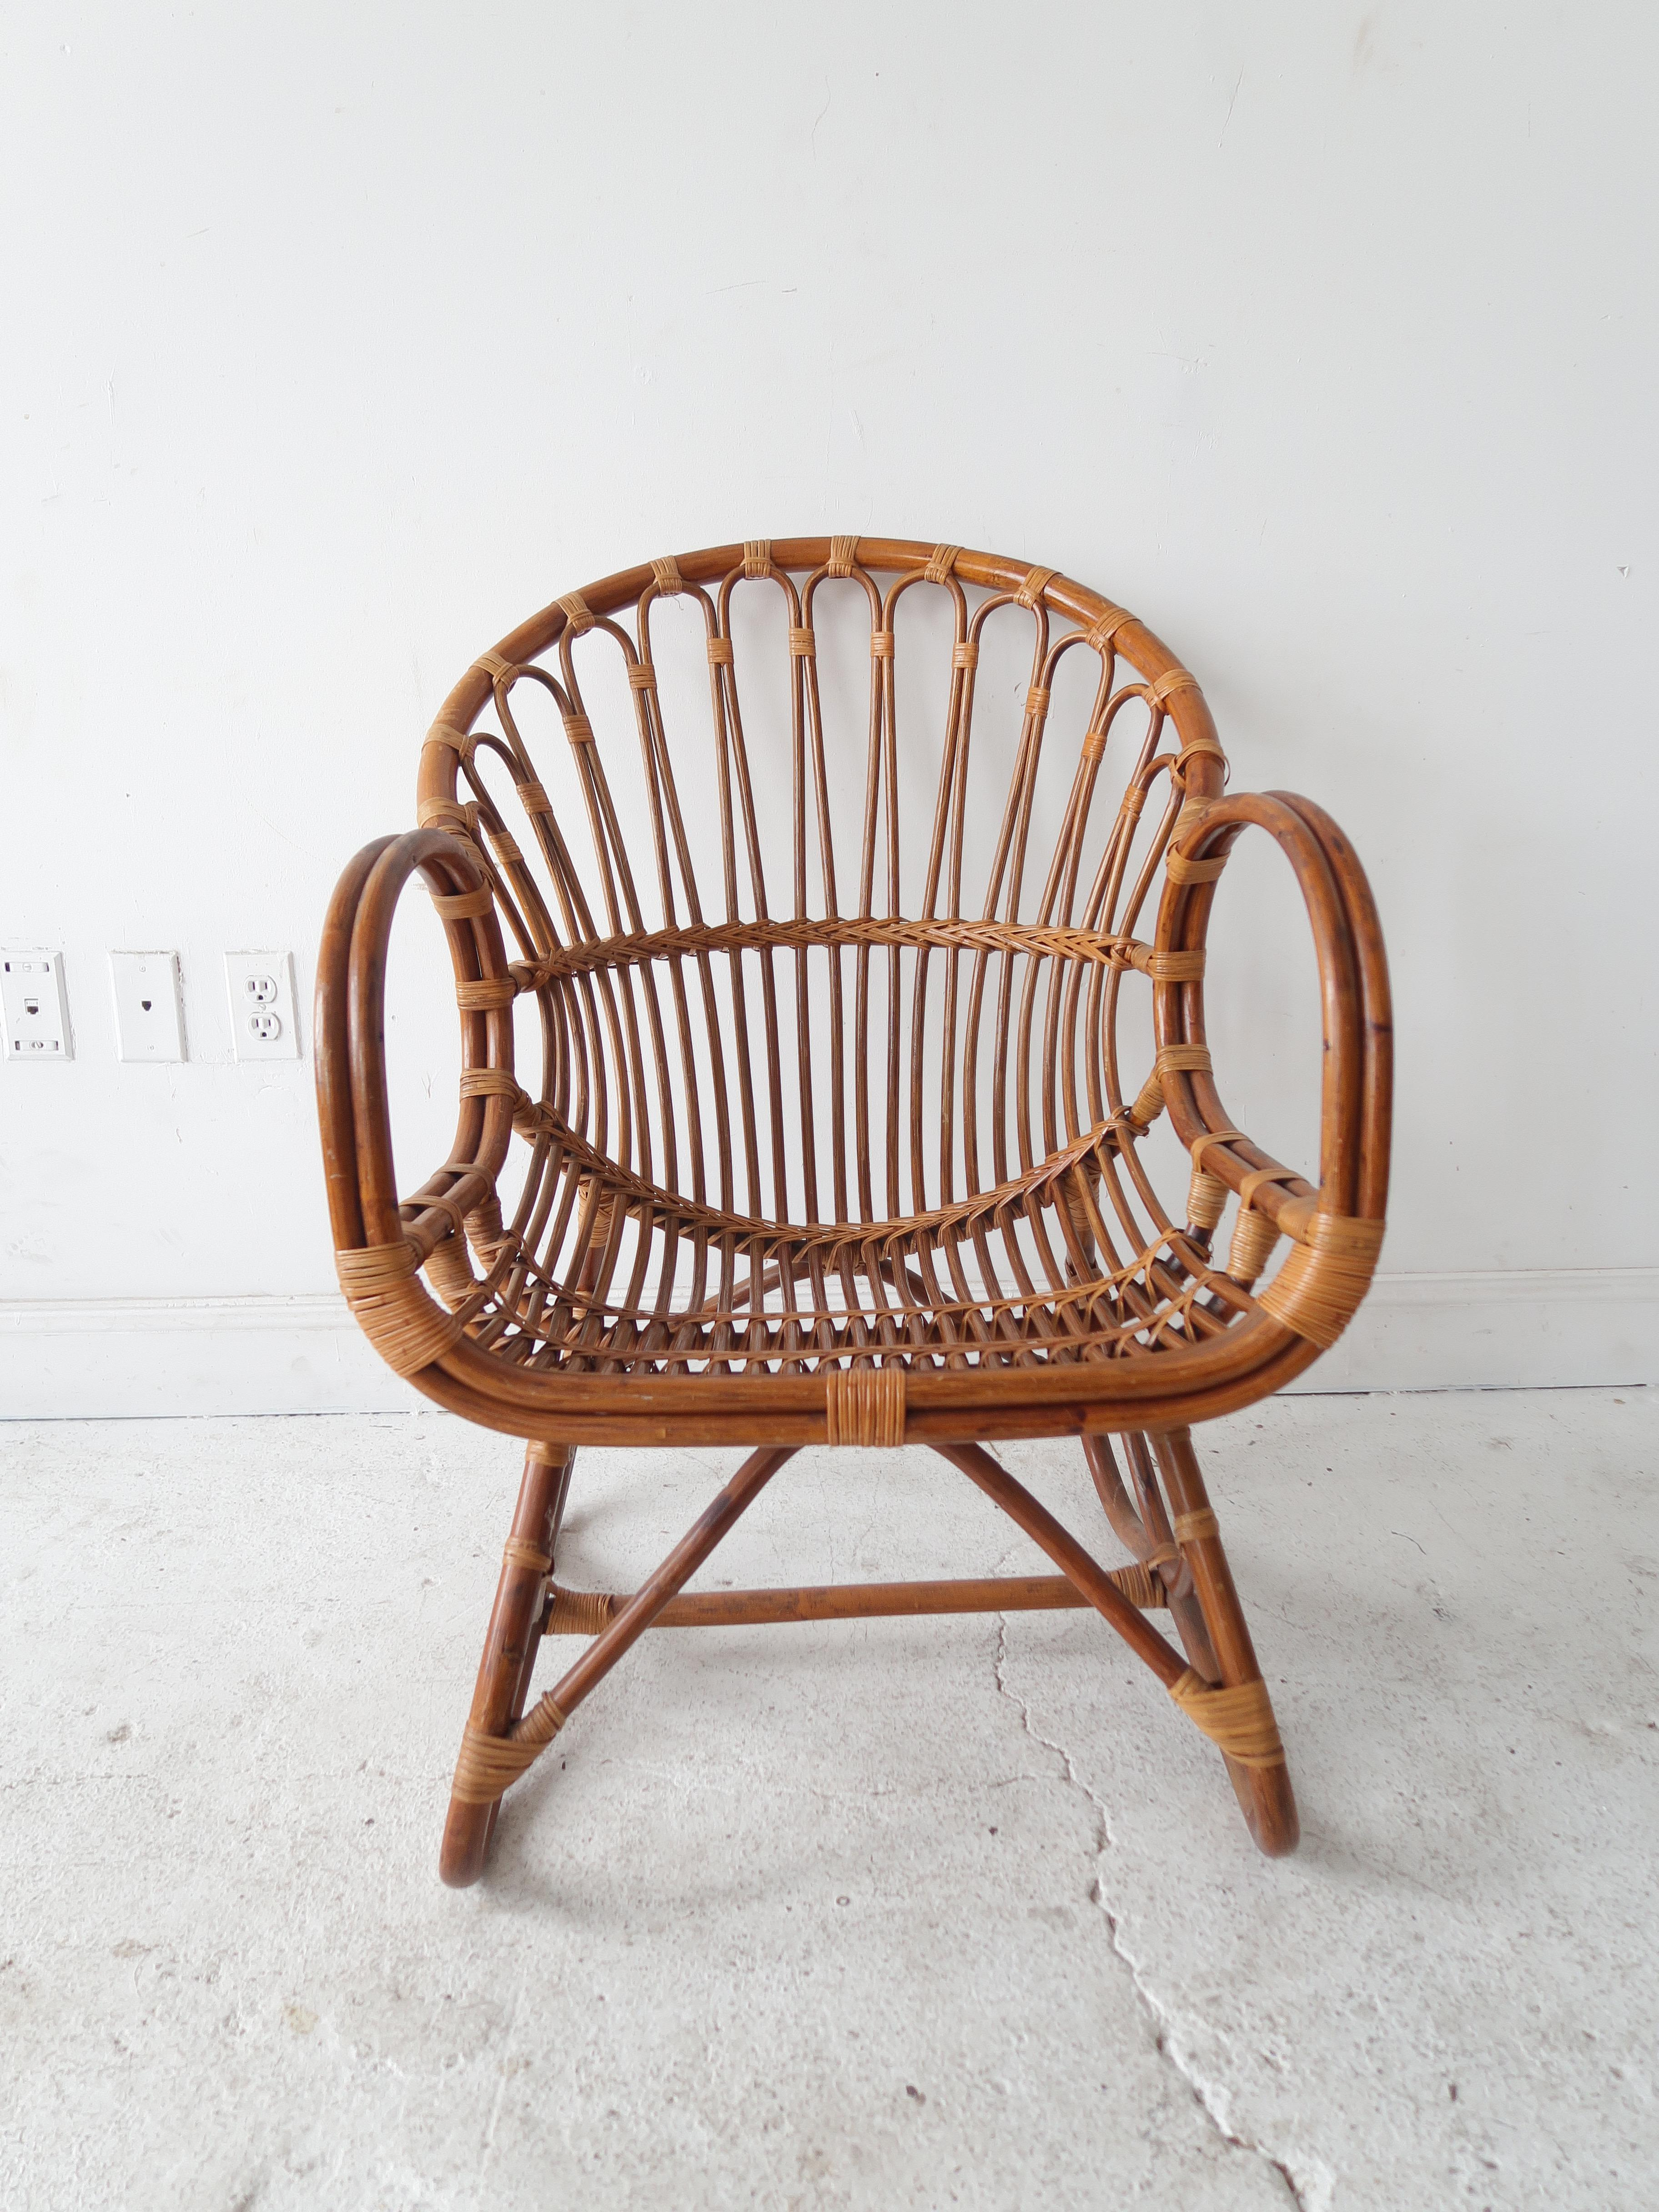 Attractive Vintage Mid Century Modern Rattan And Bamboo Chair   2 In Stock   Image 4 Of